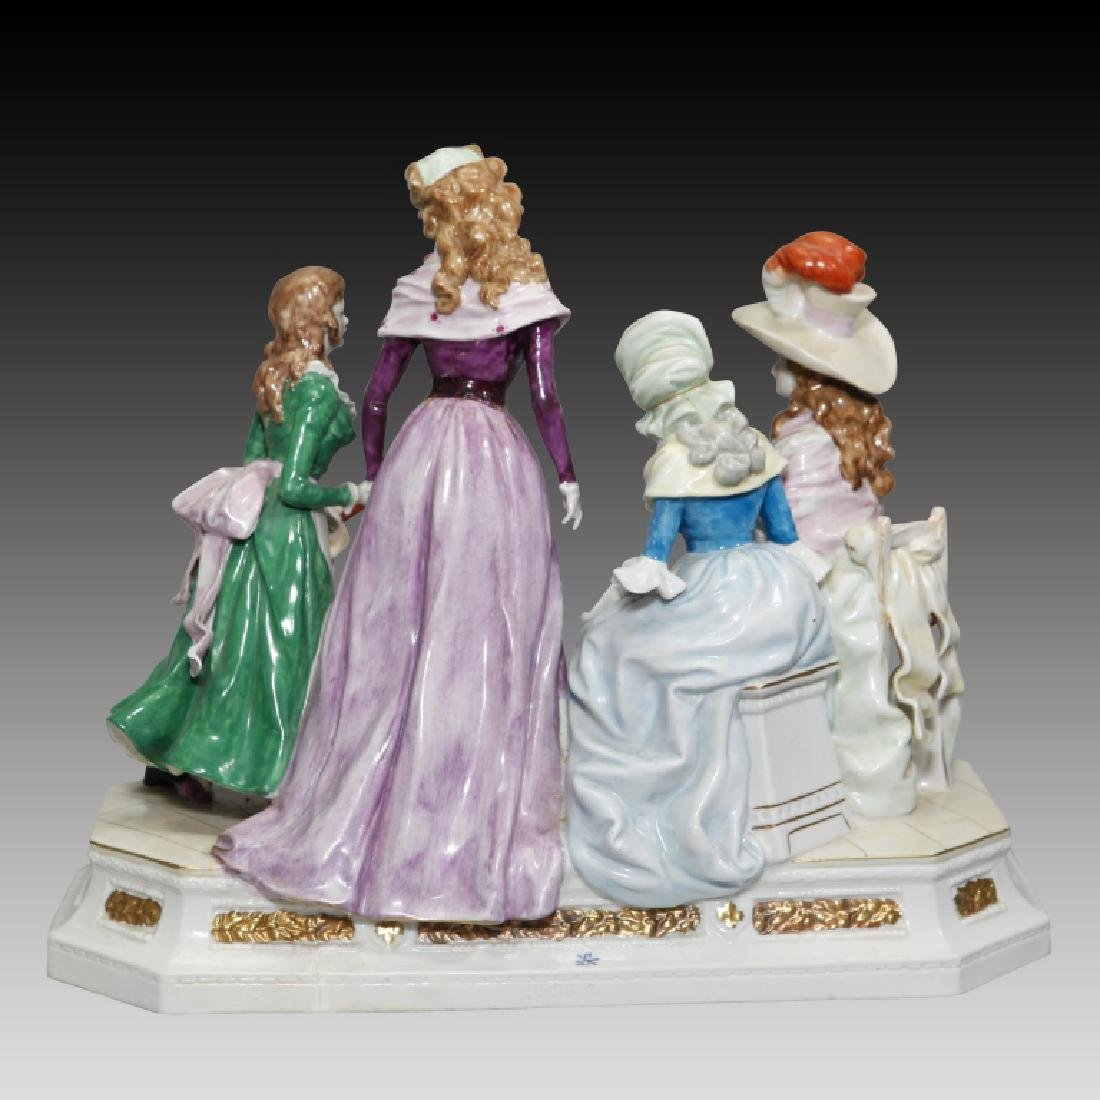 Figurine Grouping of 3 Women and Children - 2